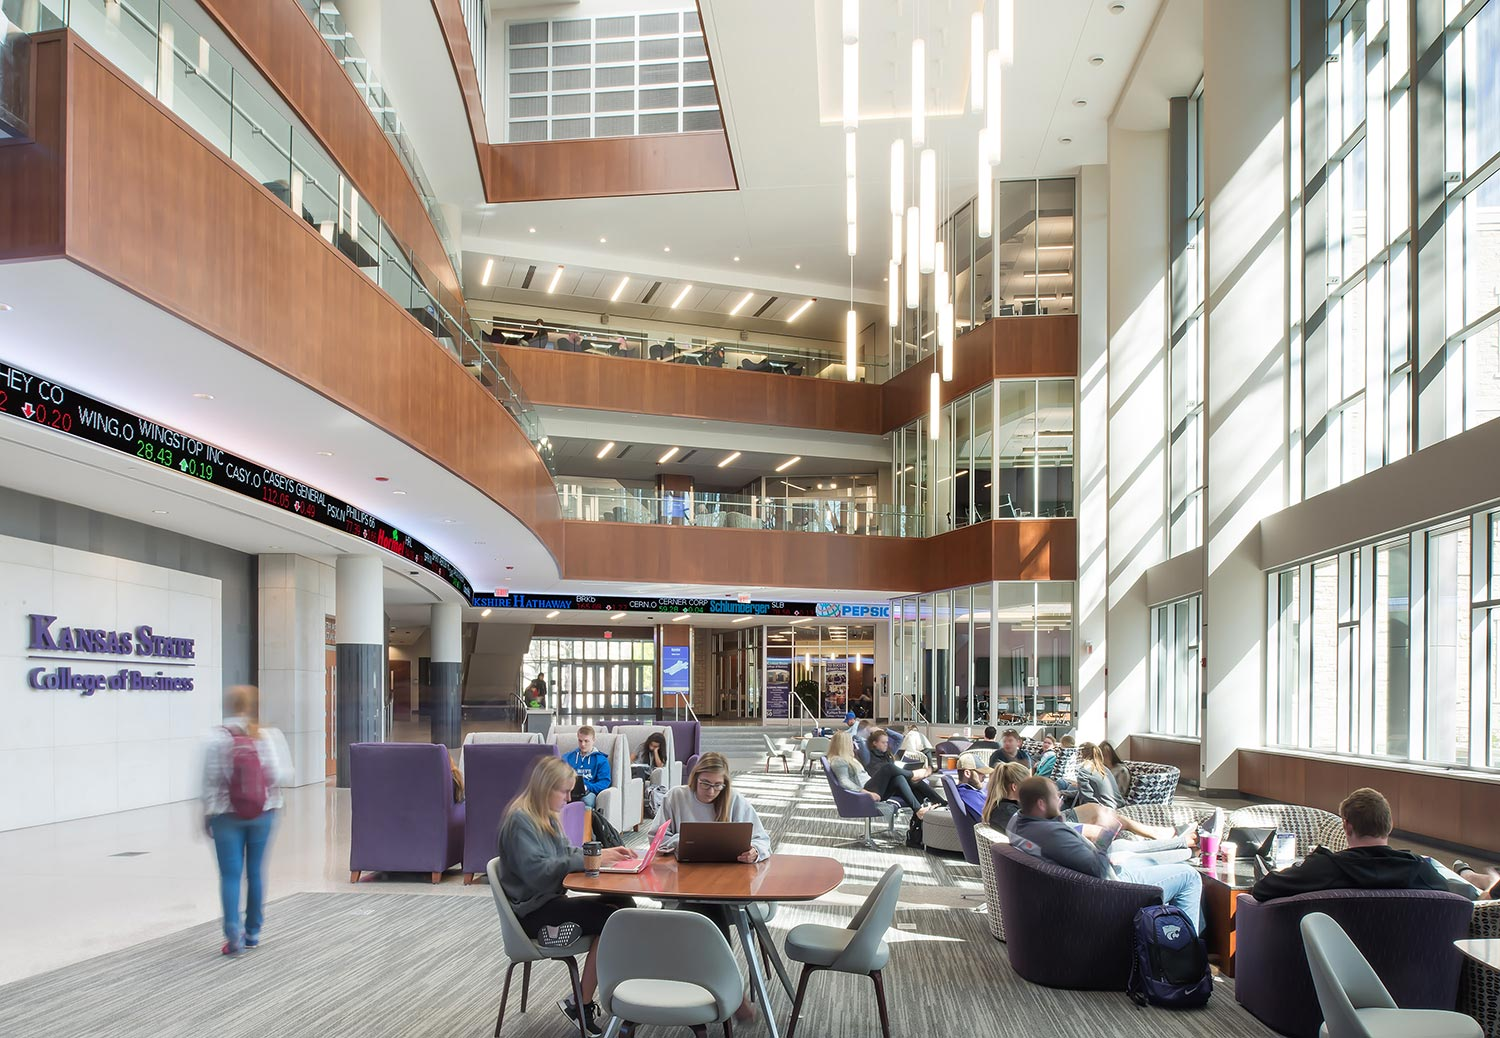 College of Business Administration Kansas State University